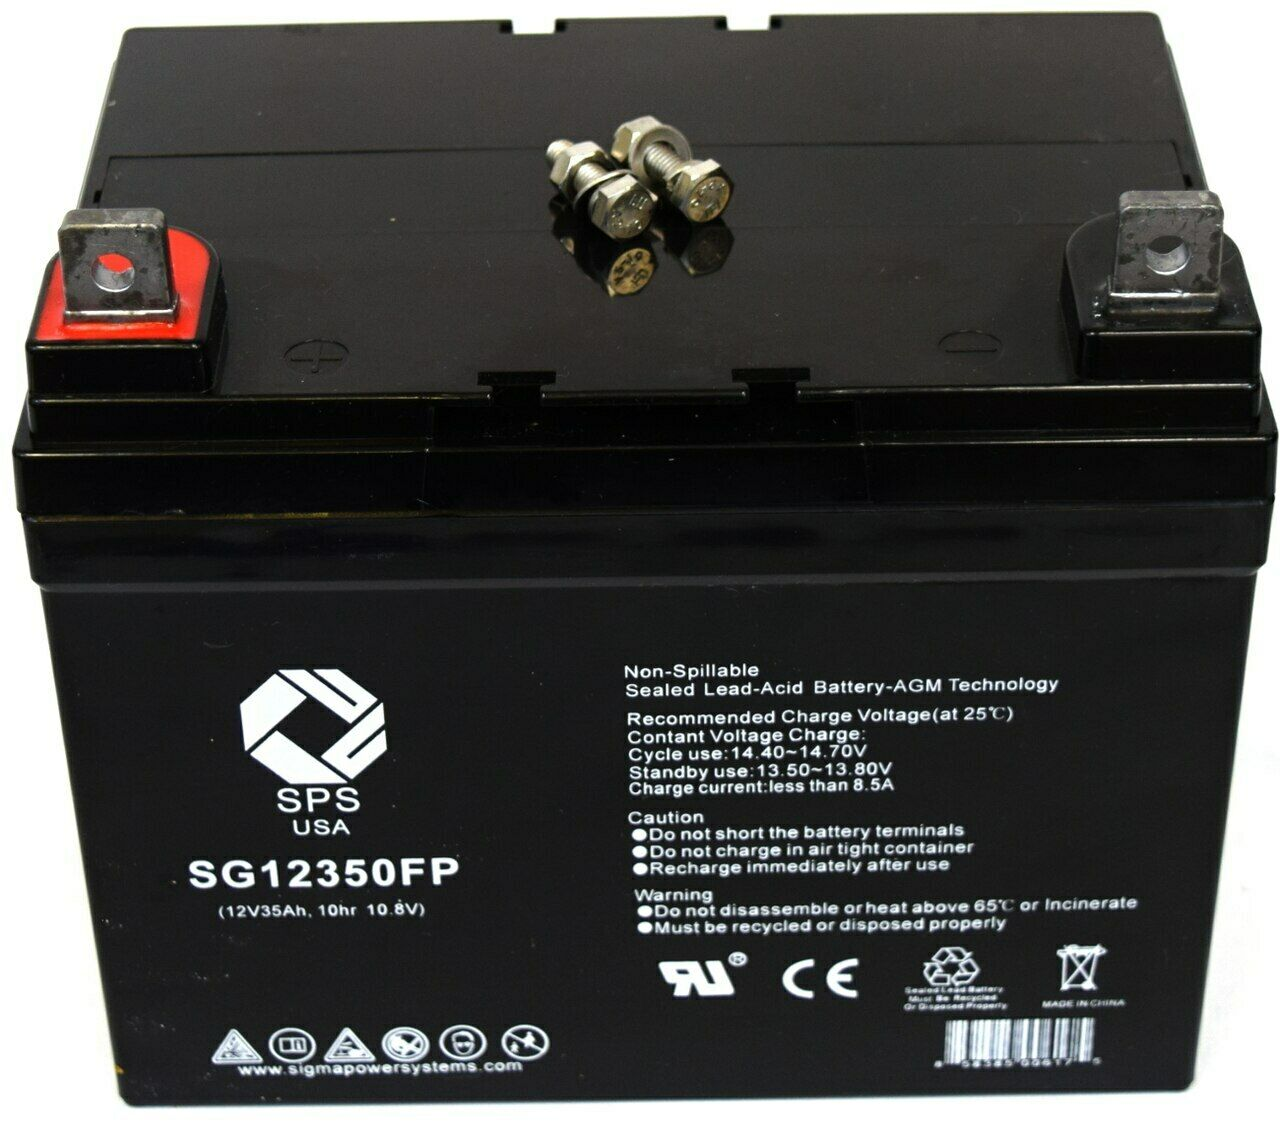 SPS Brand 12V 35Ah Replacement battery for Pride Mobility Jazzy 1107 Wheelchair